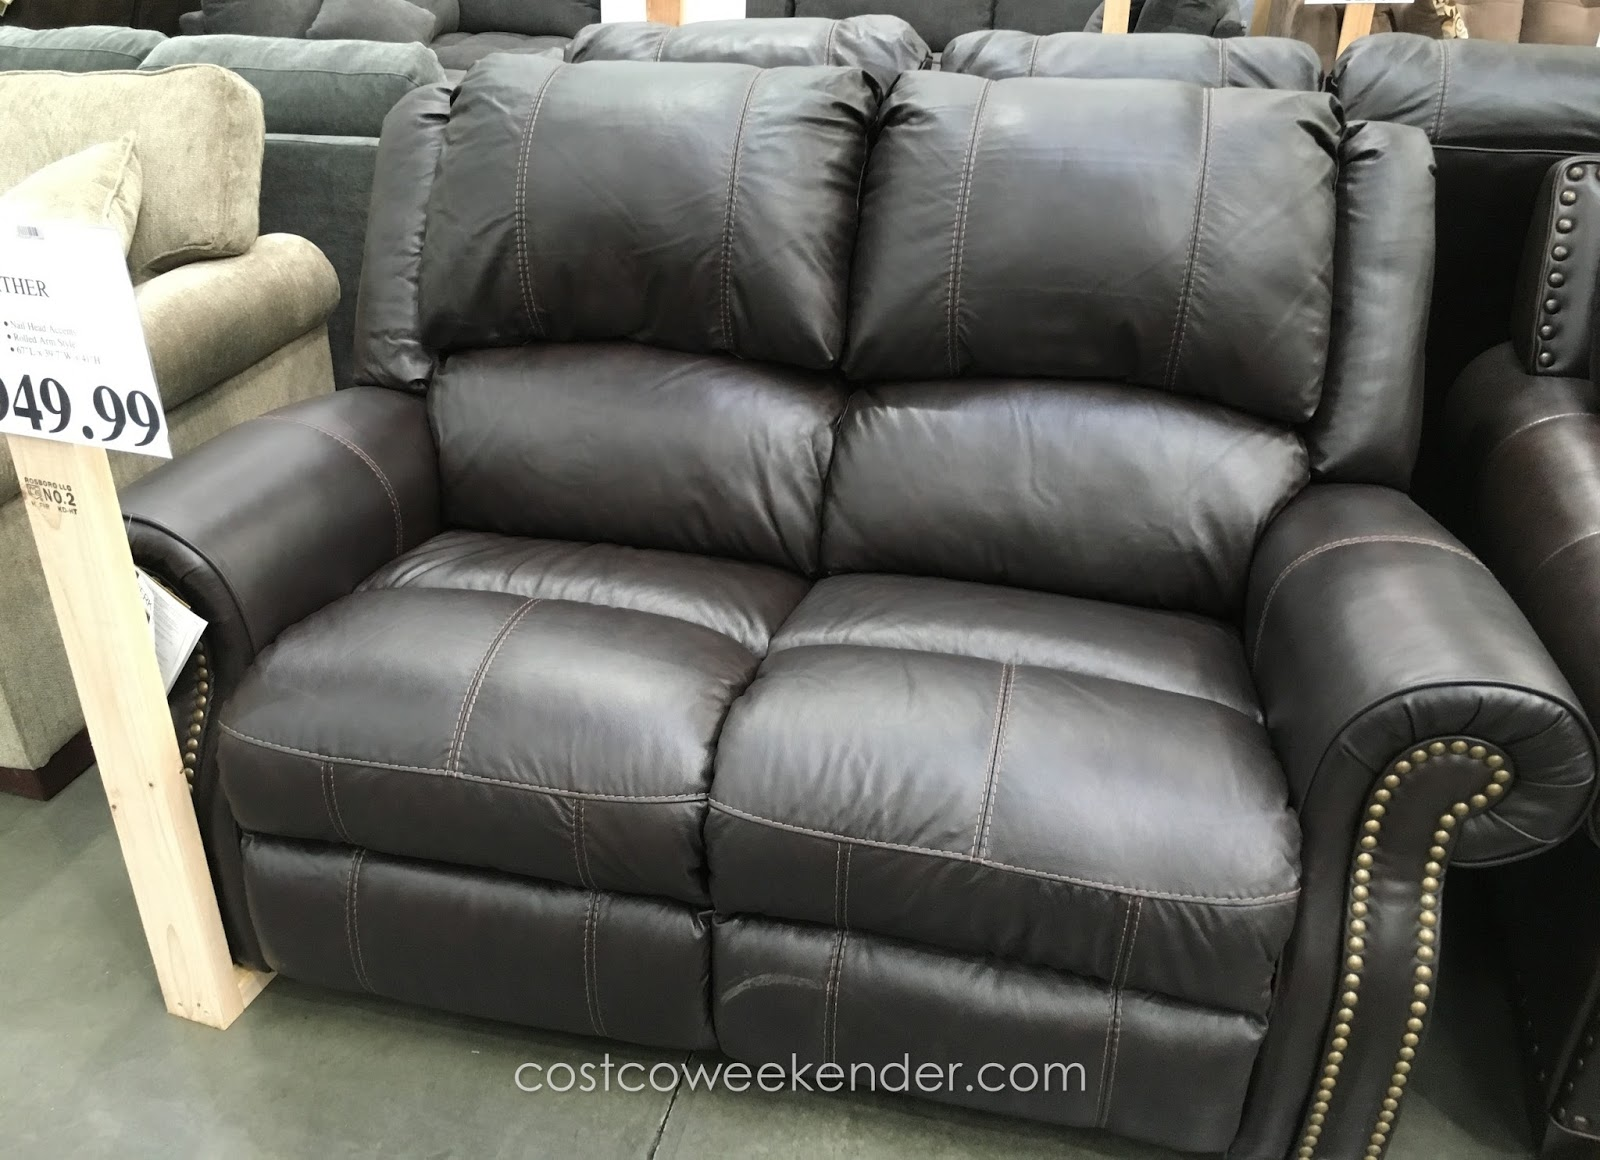 Berkline reclining leather loveseat costco weekender Leather reclining loveseat